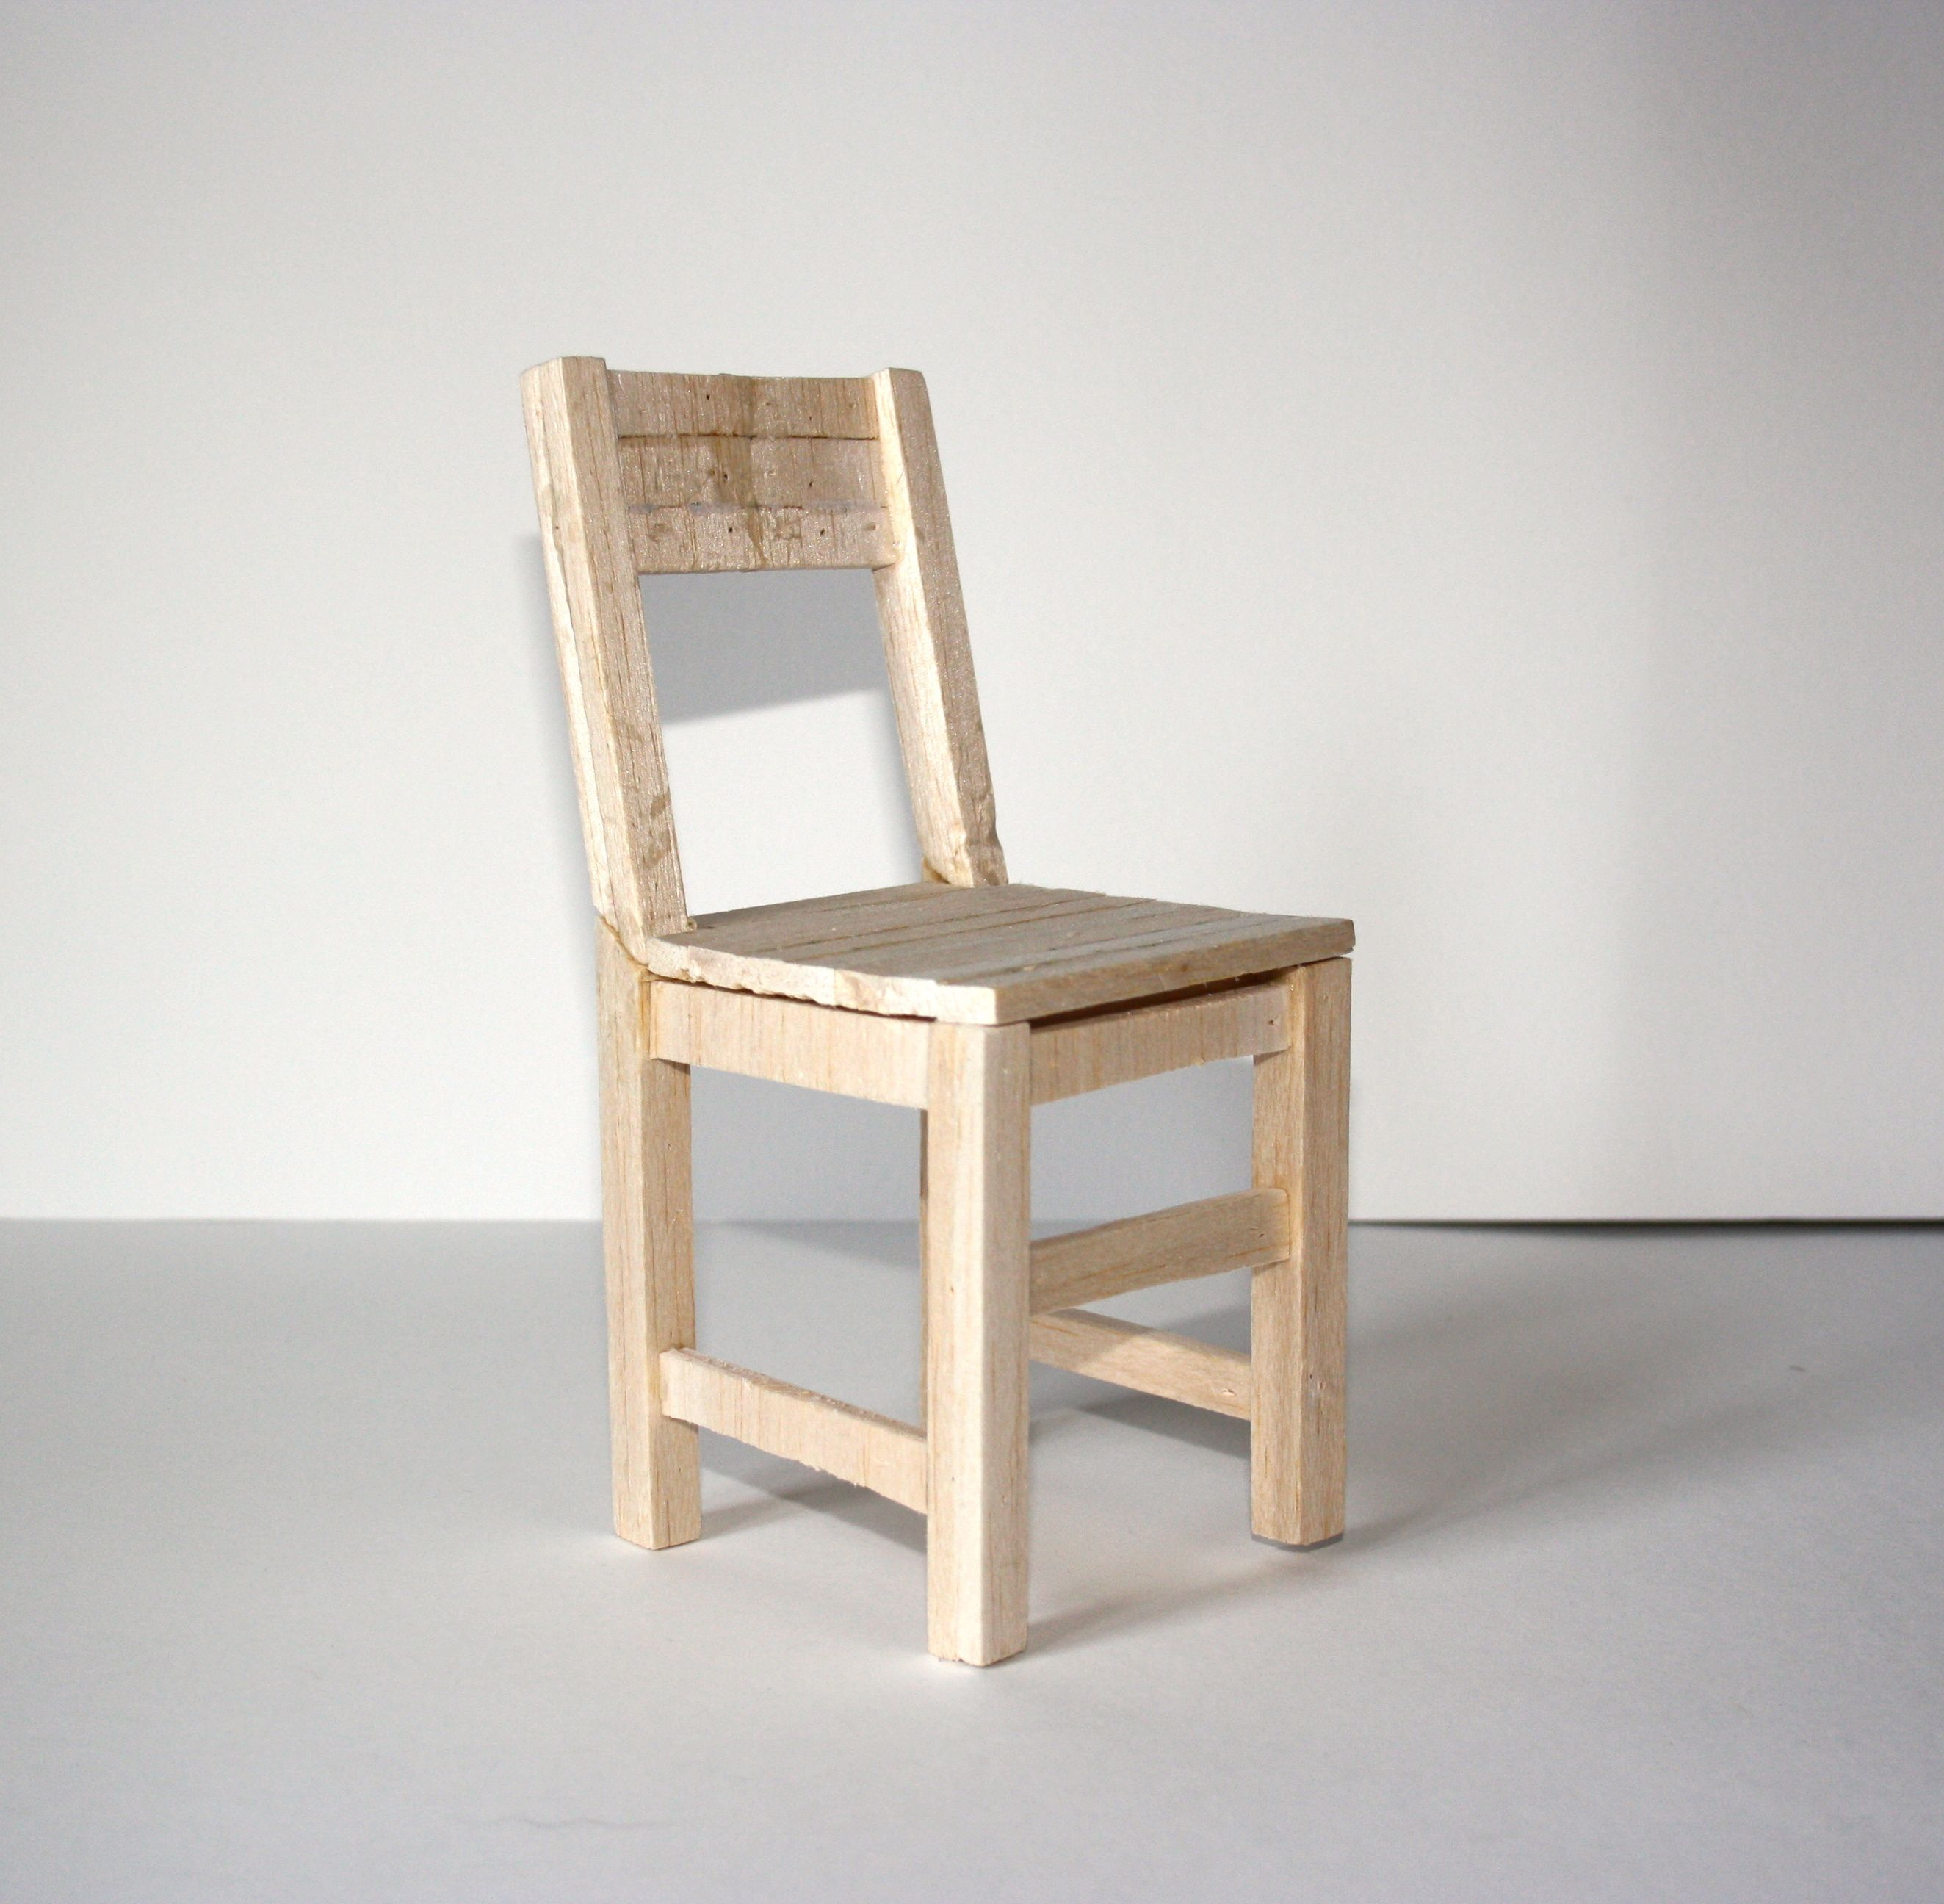 How to build make wooden chairs pdf plans